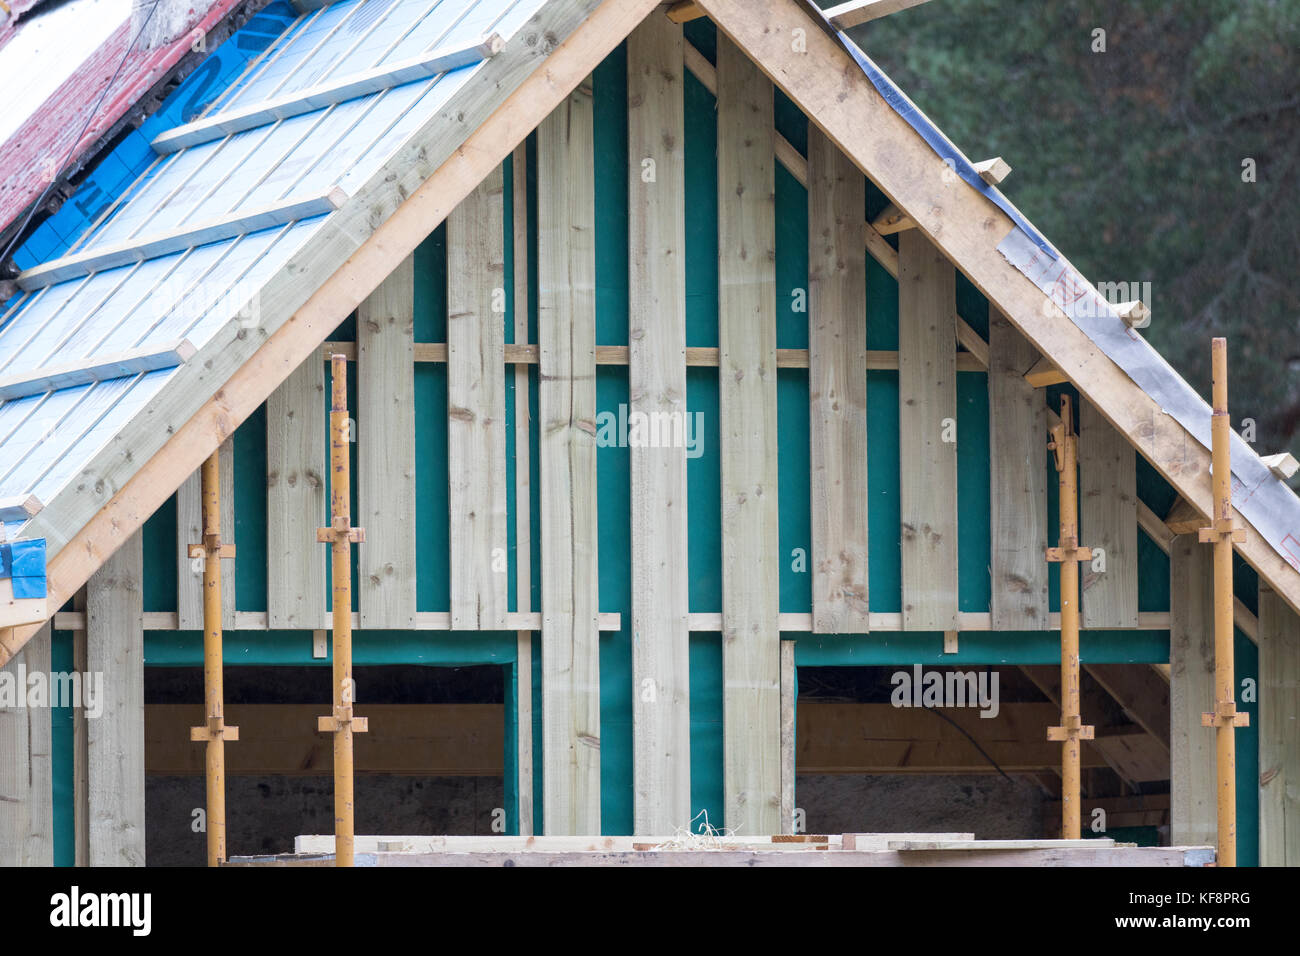 Scottish cabin being renovated on the Rothiemurchus Estate in the Rothiemurchus Forest with new board and batten - Stock Image